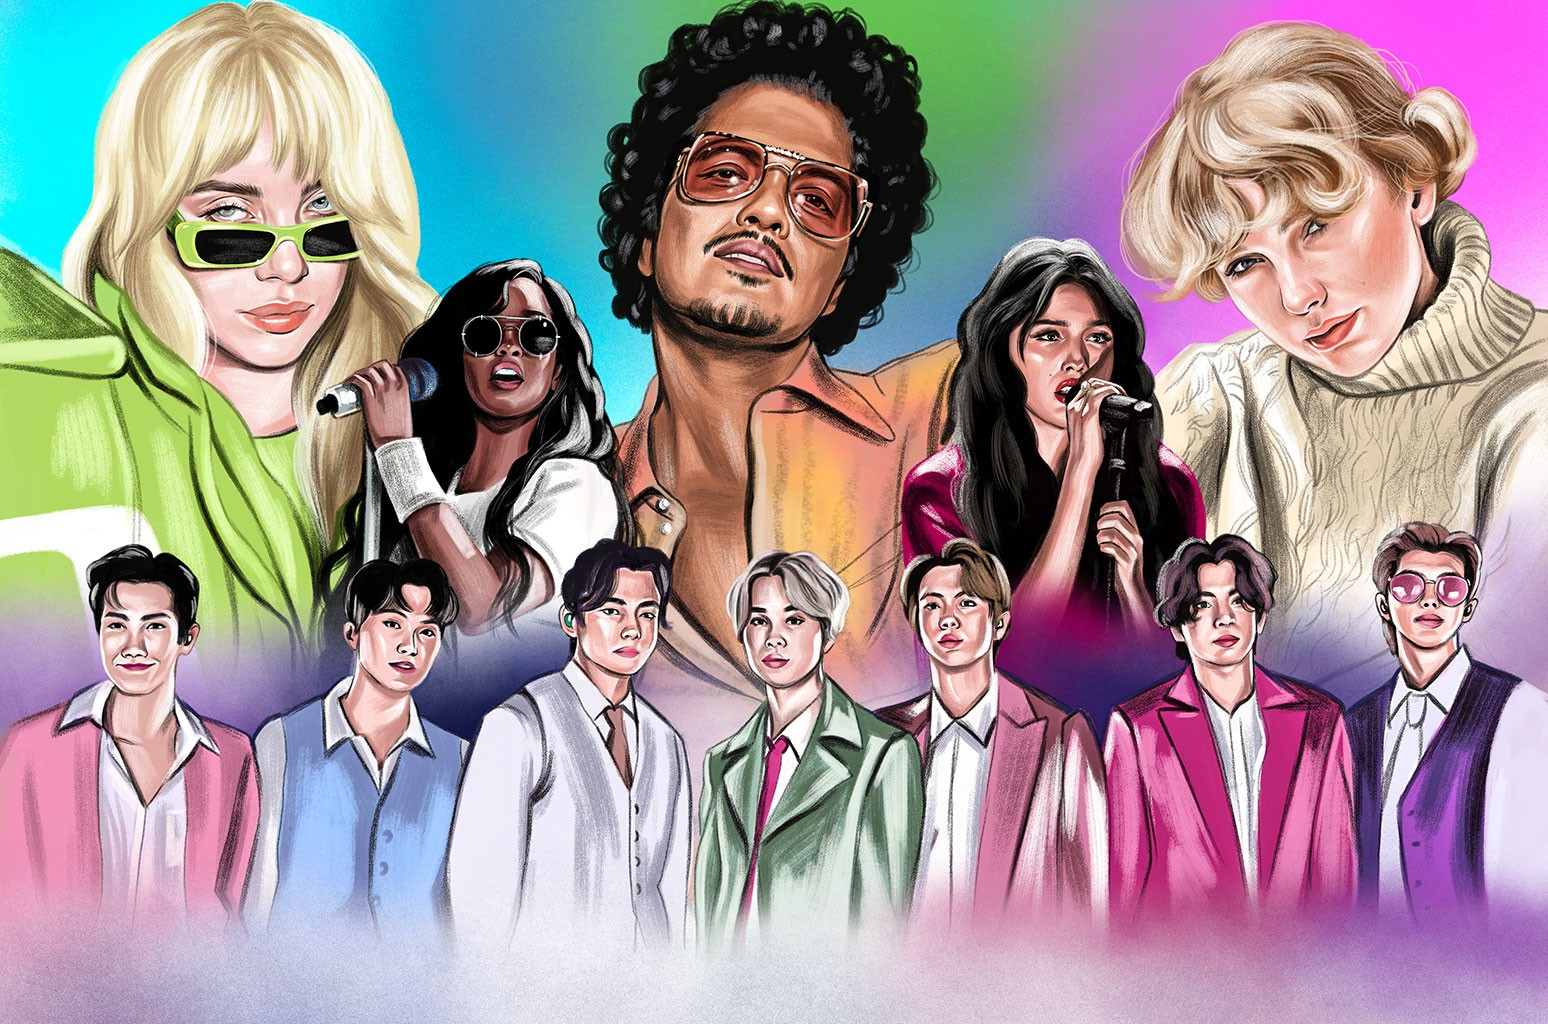 The Six Acts Most Likely to Break Records at the 2022 Grammys